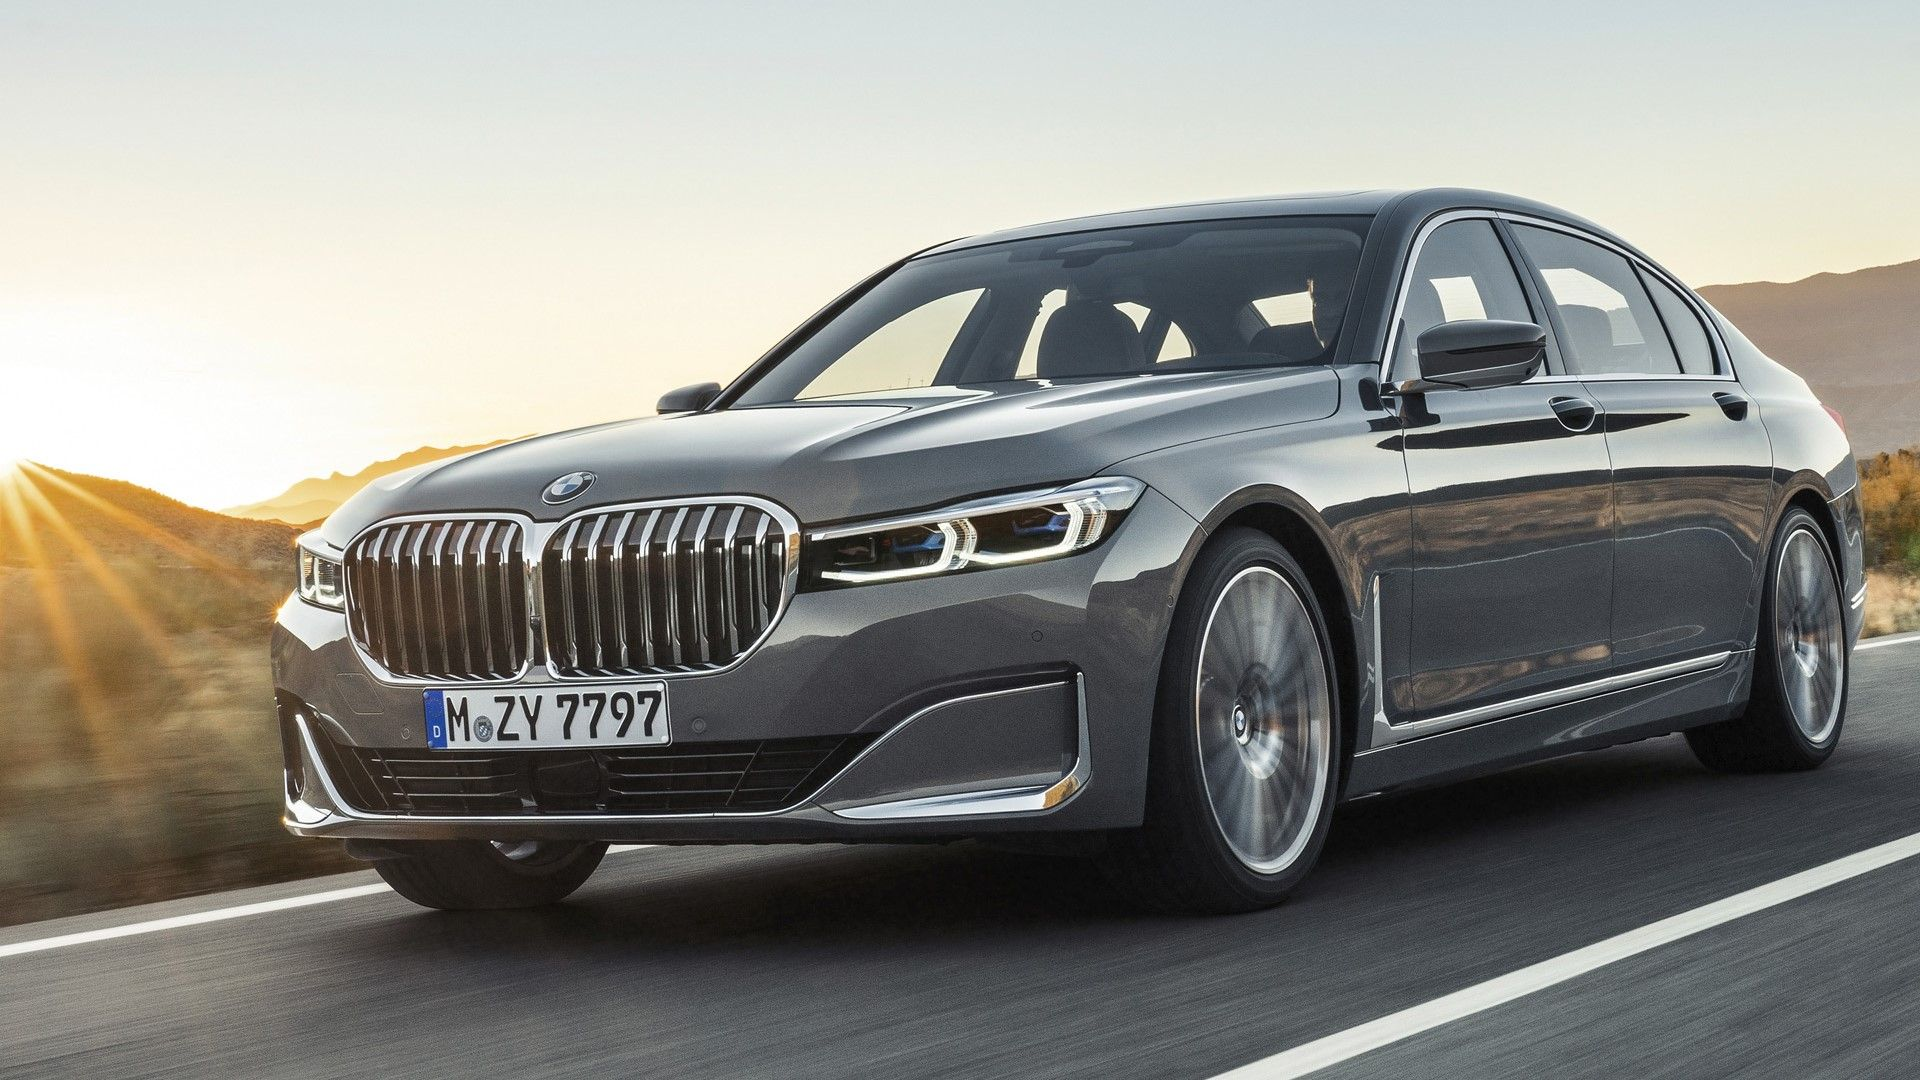 2021 Bmw 7 Series Review Trims Features Prices Packages Performance And Rivals